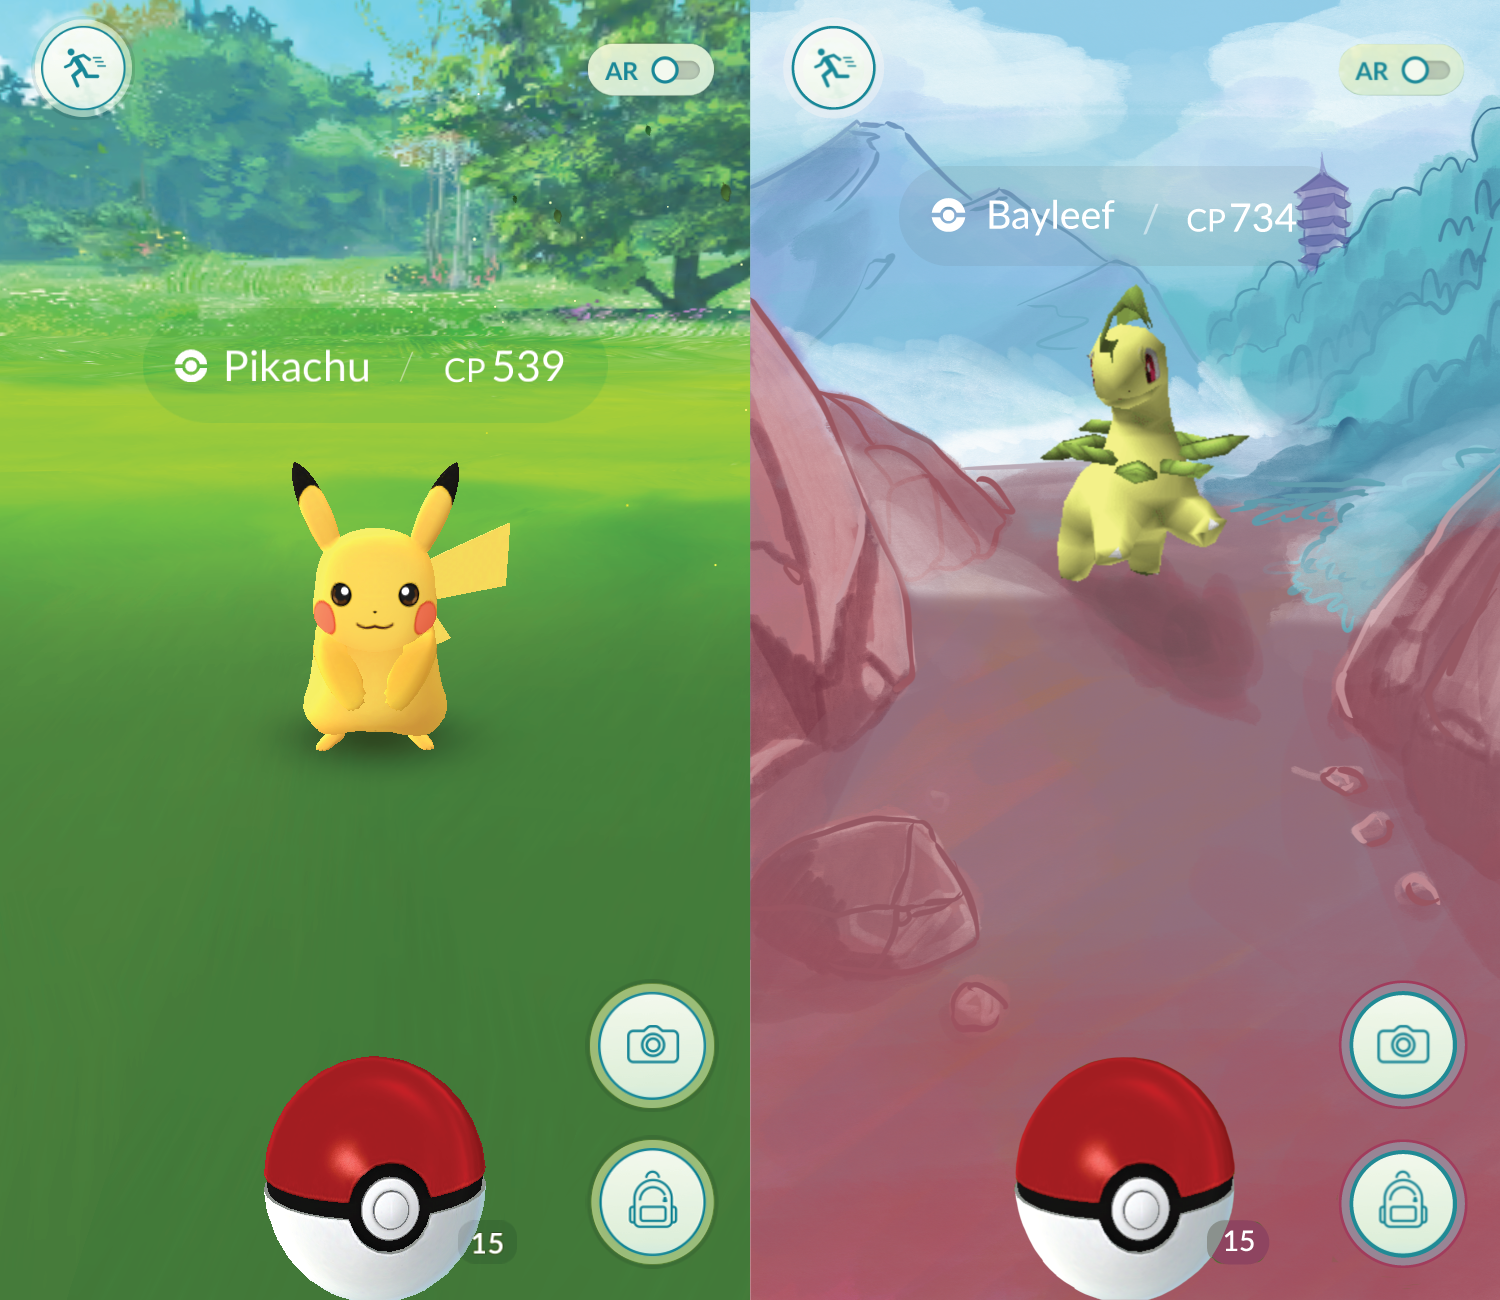 What a Gen II background screen could look like for Johto.